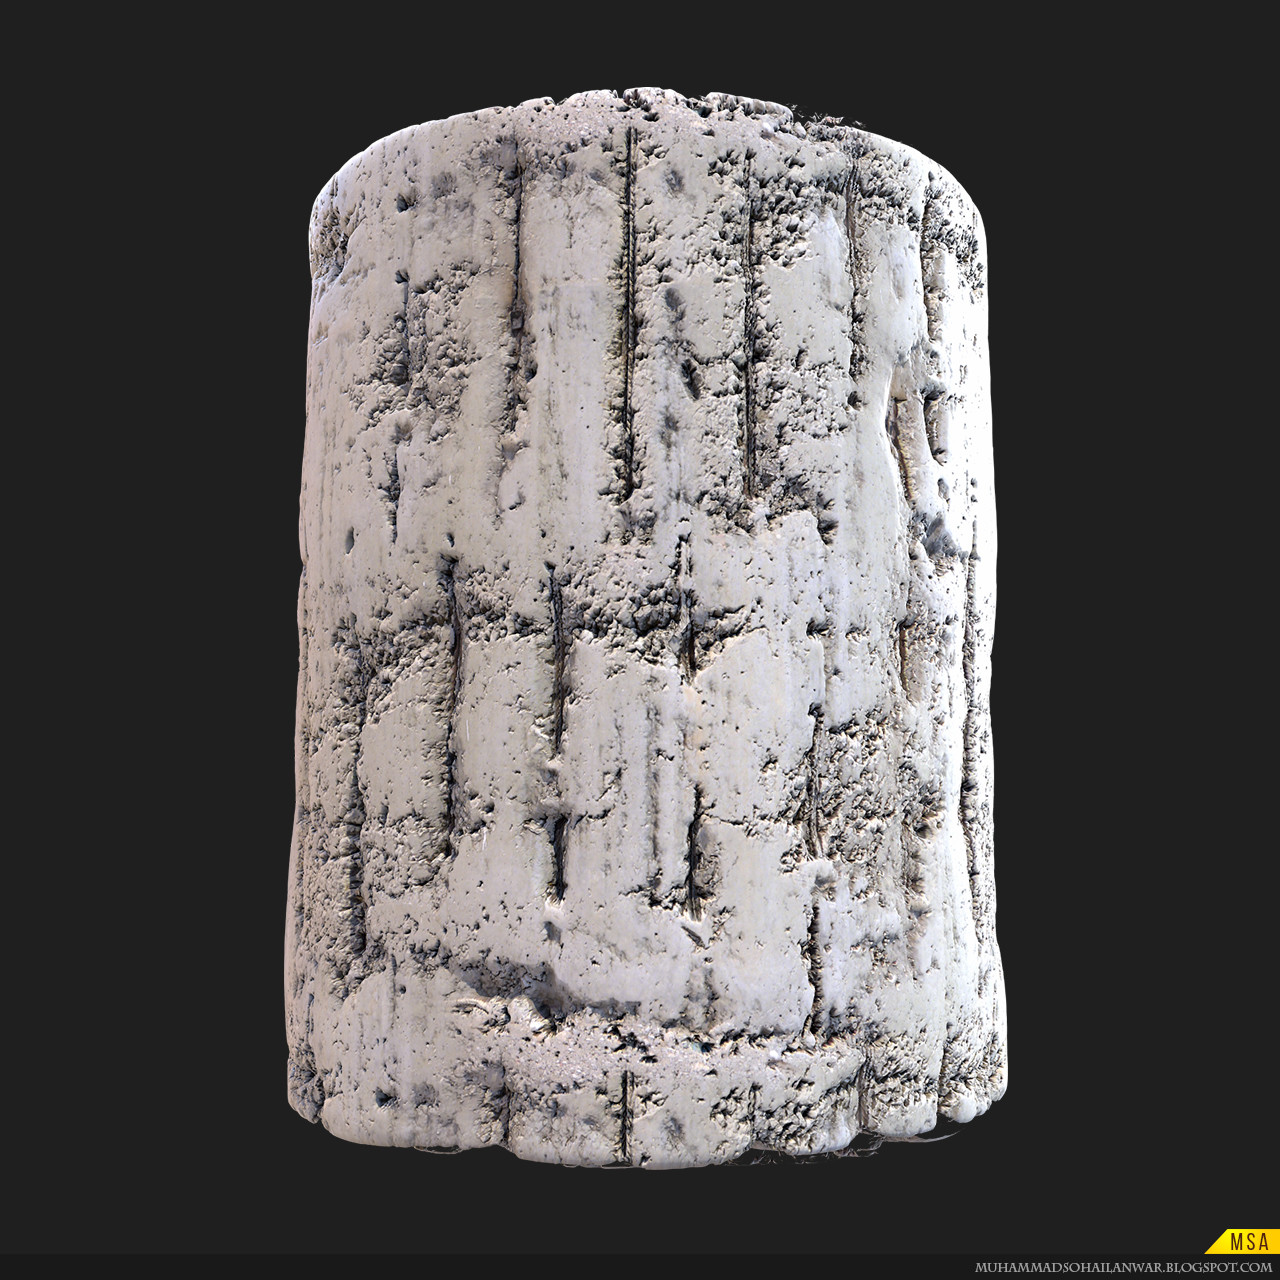 ArtStation - Bunker Wall with Rebar - Game Tiling Texture